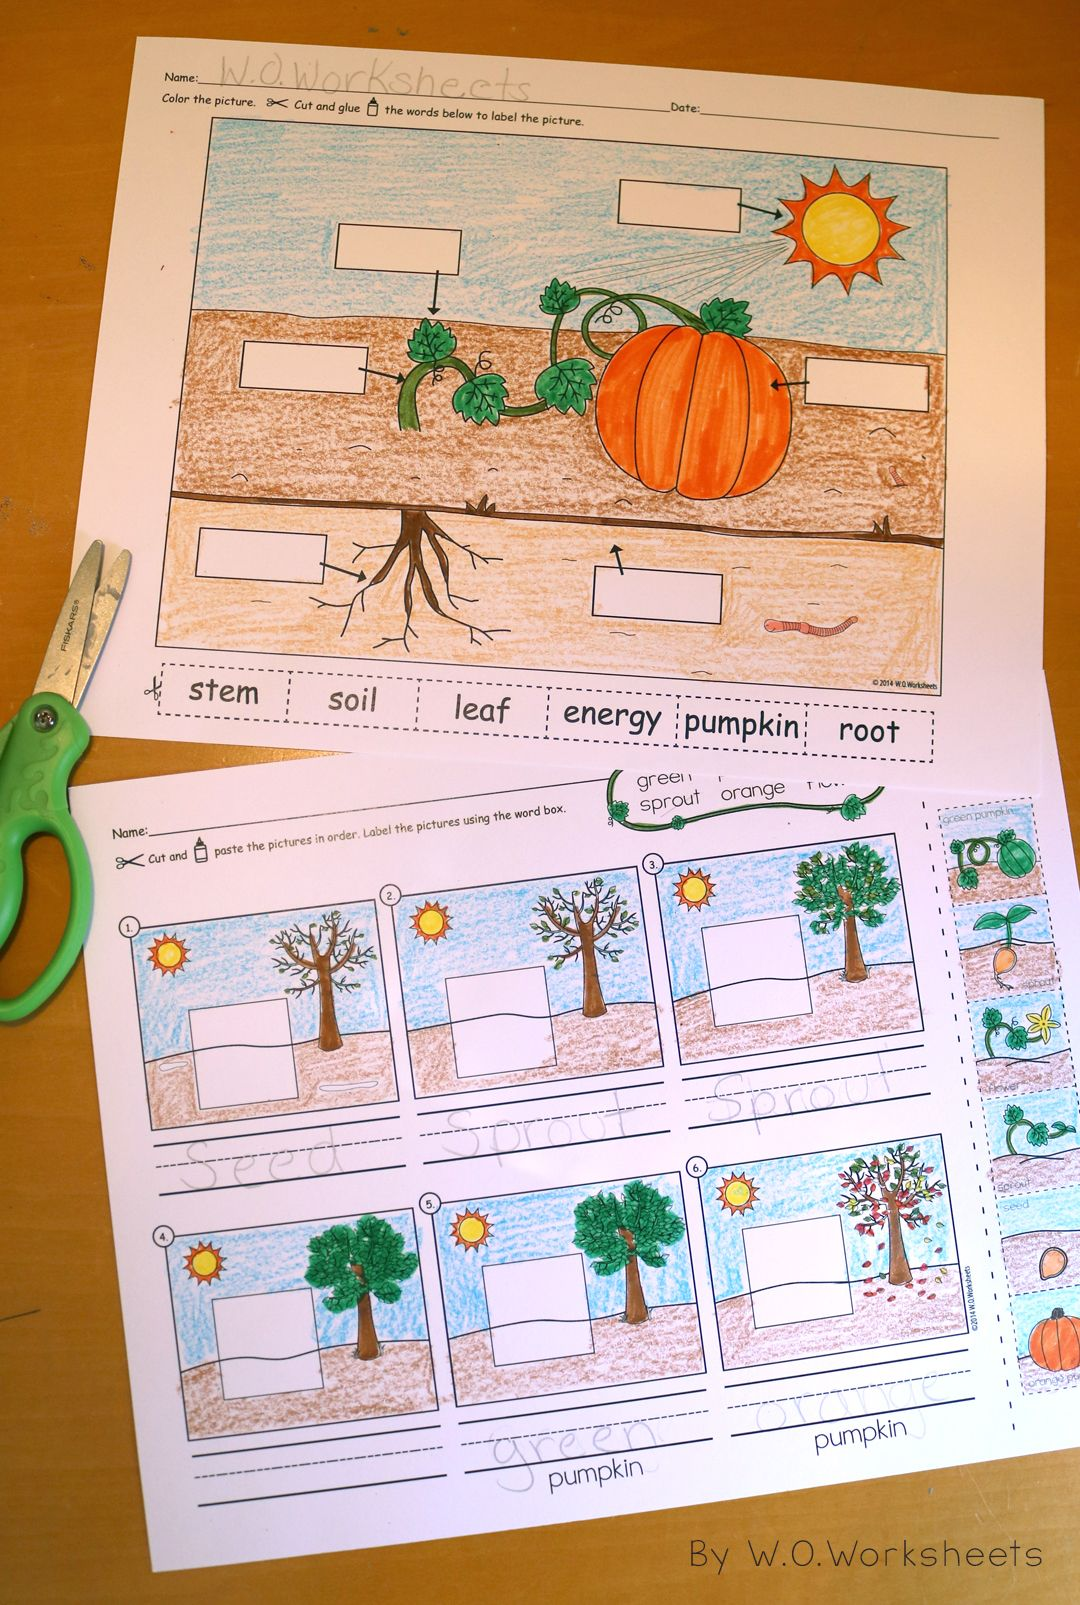 Pumpkin Life Cycle With Images